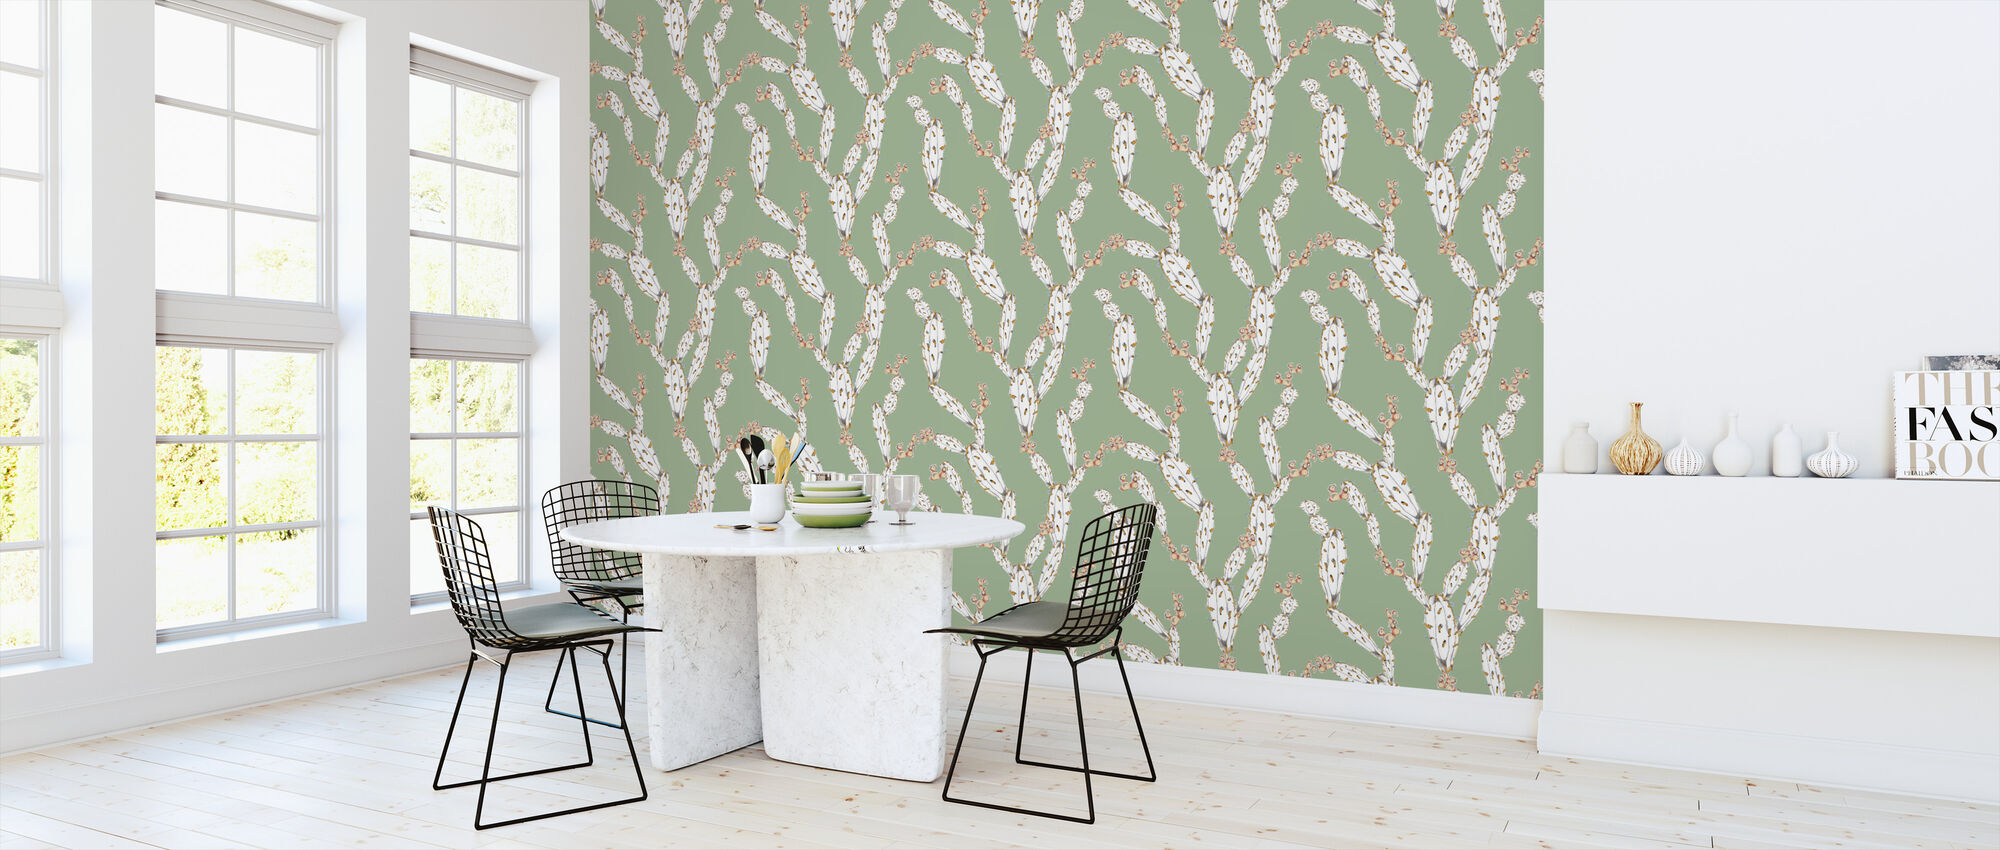 Mostly Cactus Green - Wallpaper - Kitchen